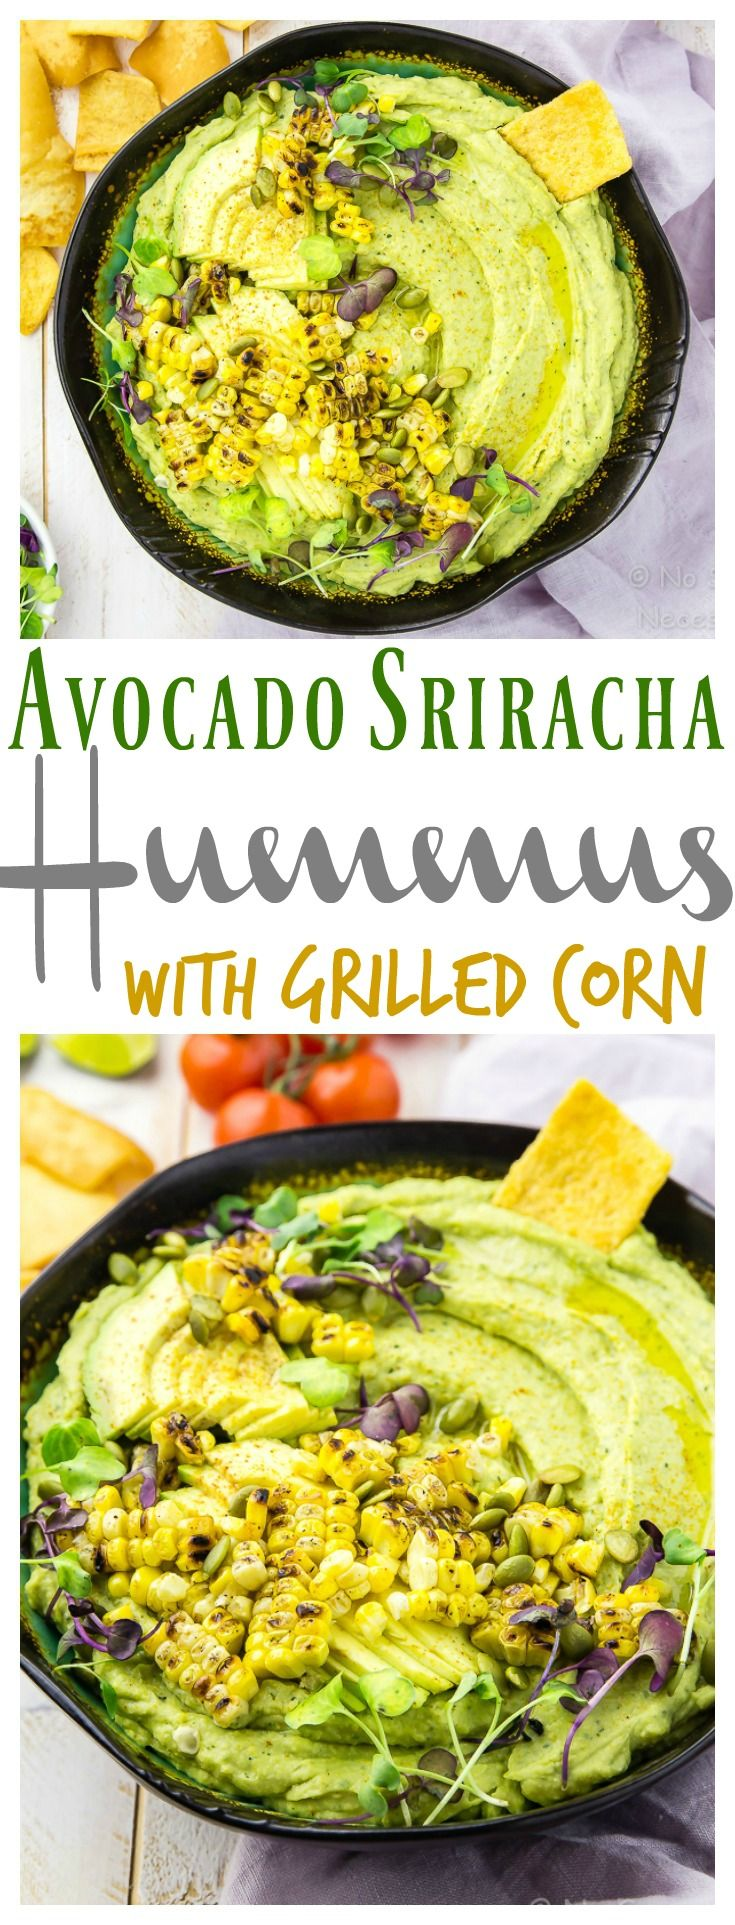 Avocado Sriracha Hummus with Grilled Corn. Silky smooth, creamy dreamy and deliciously healthy, this hummus is packed with flavor and makes the perfect summer snack or appetizer!